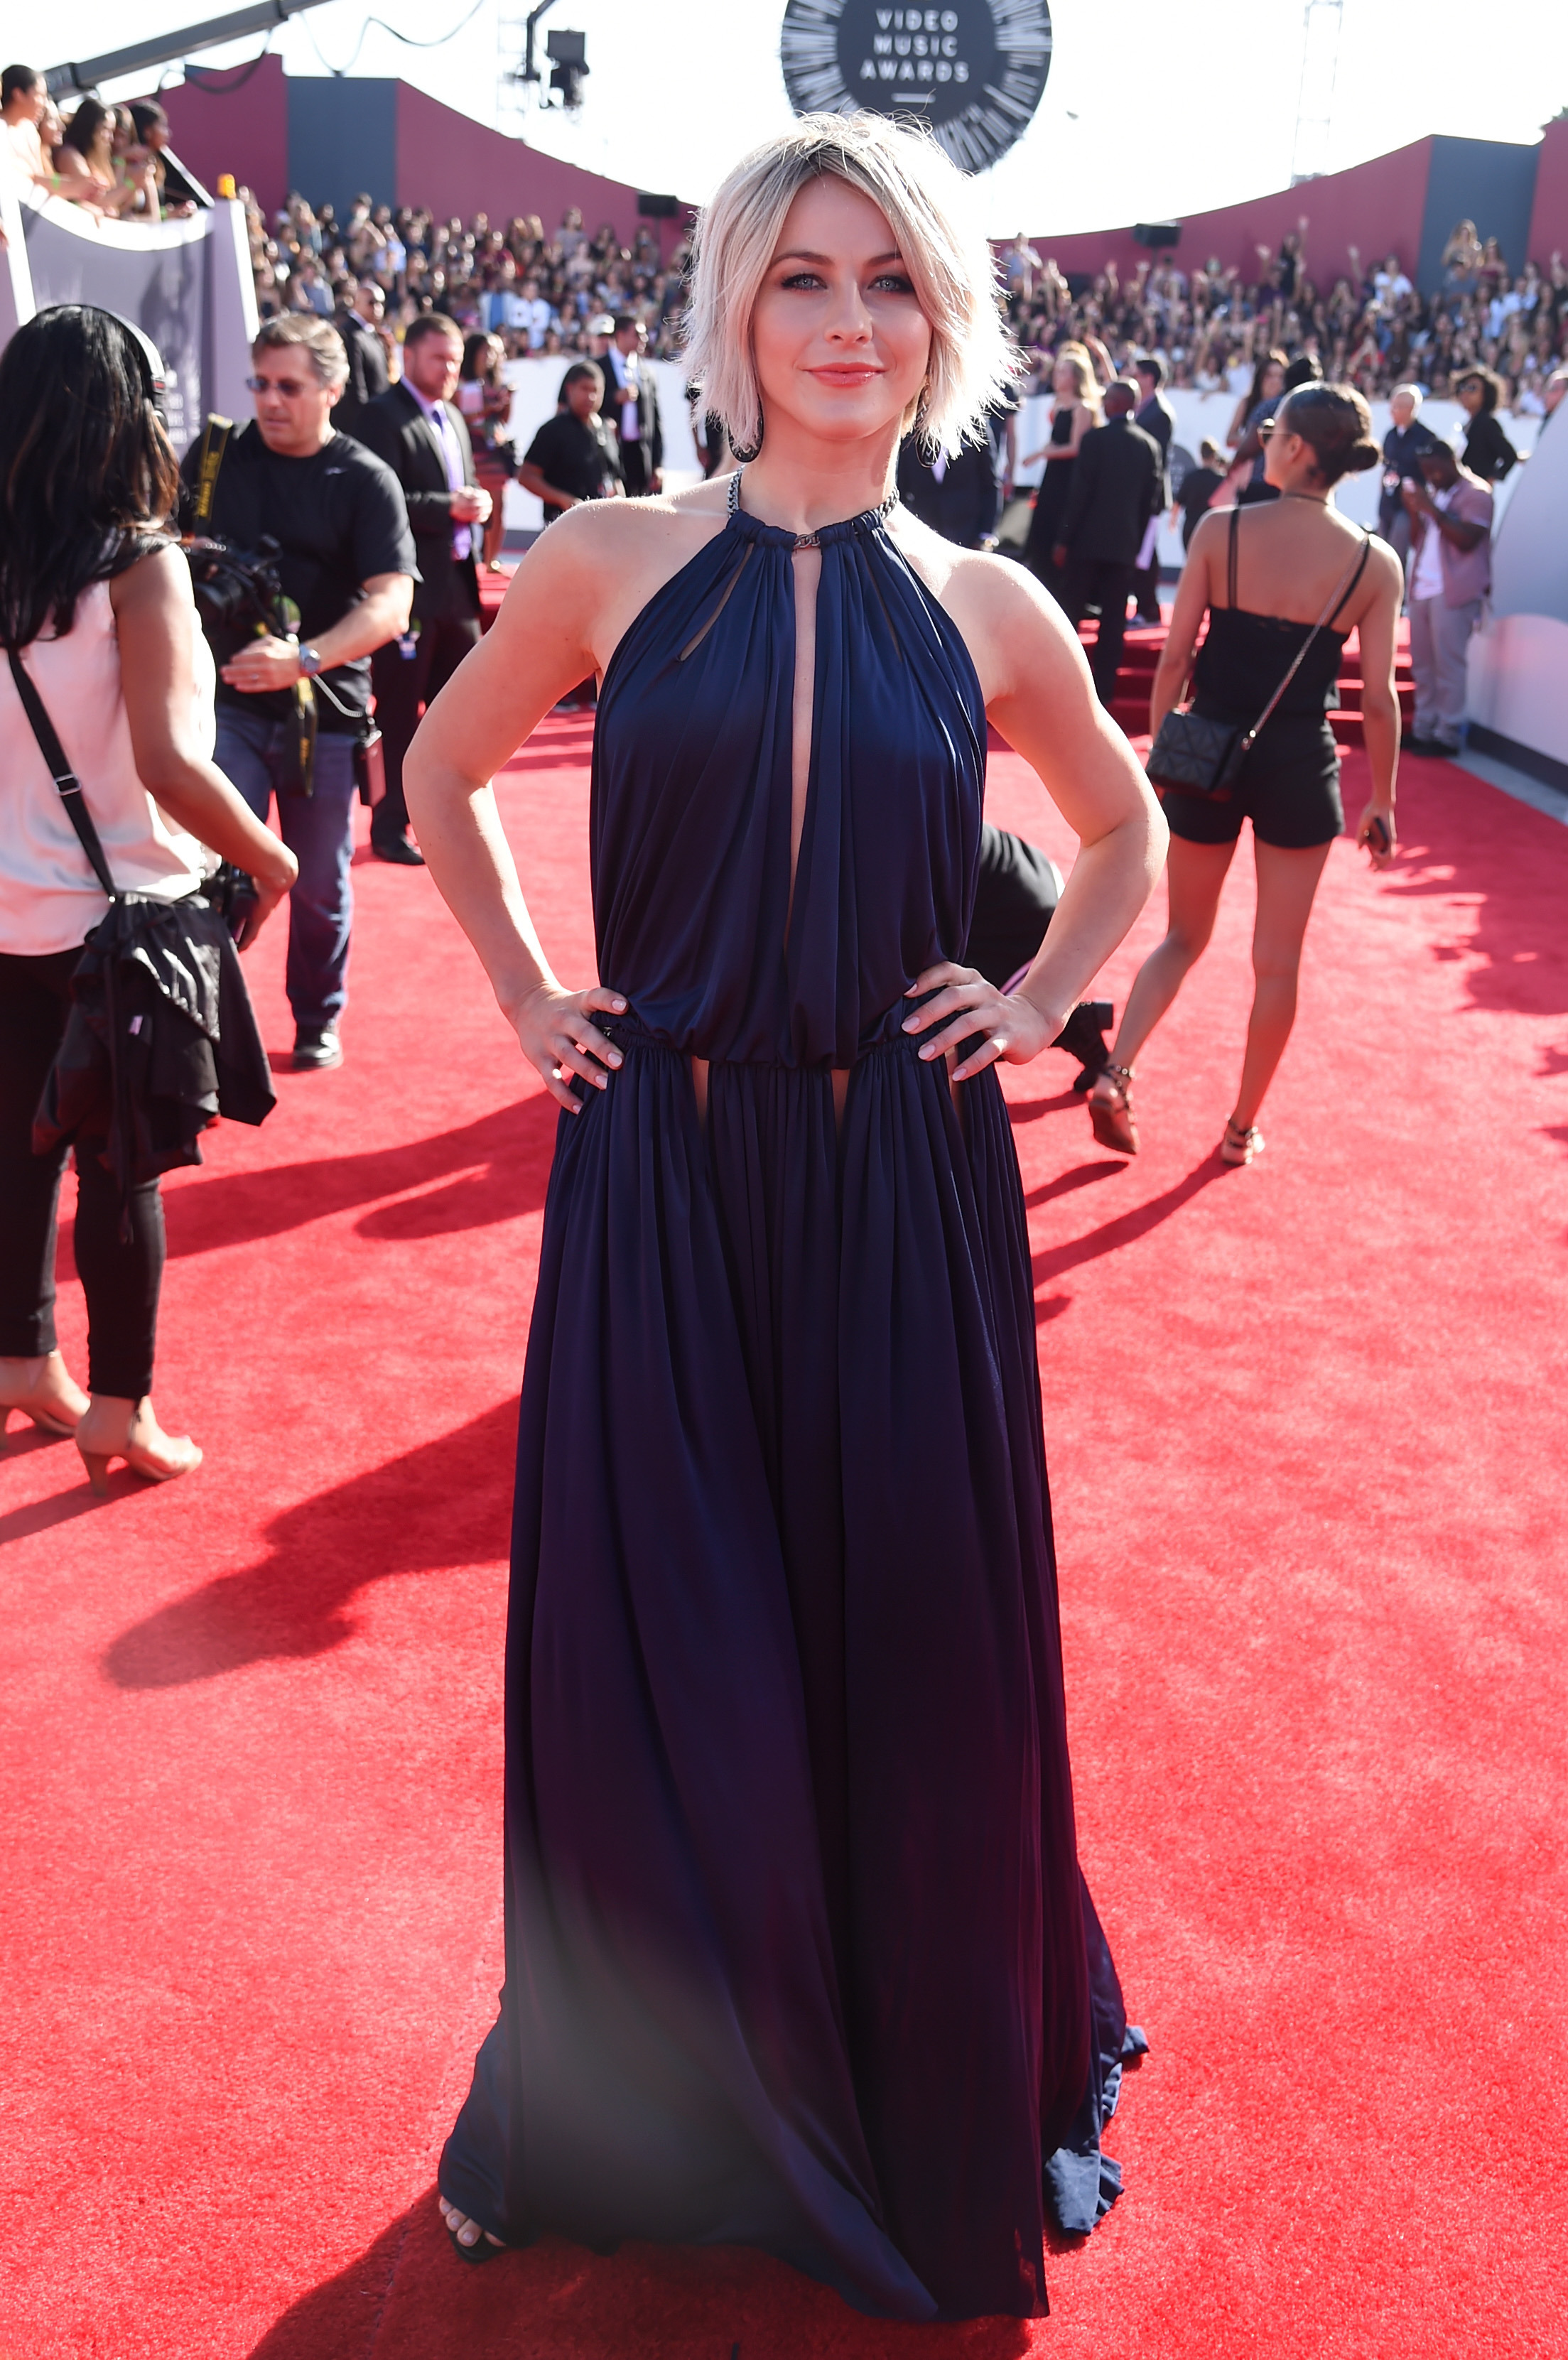 Actress Julianne Hough attends the 2014 MTV Video Music Awards at The Forum on August 24, 2014 in Inglewood, California..